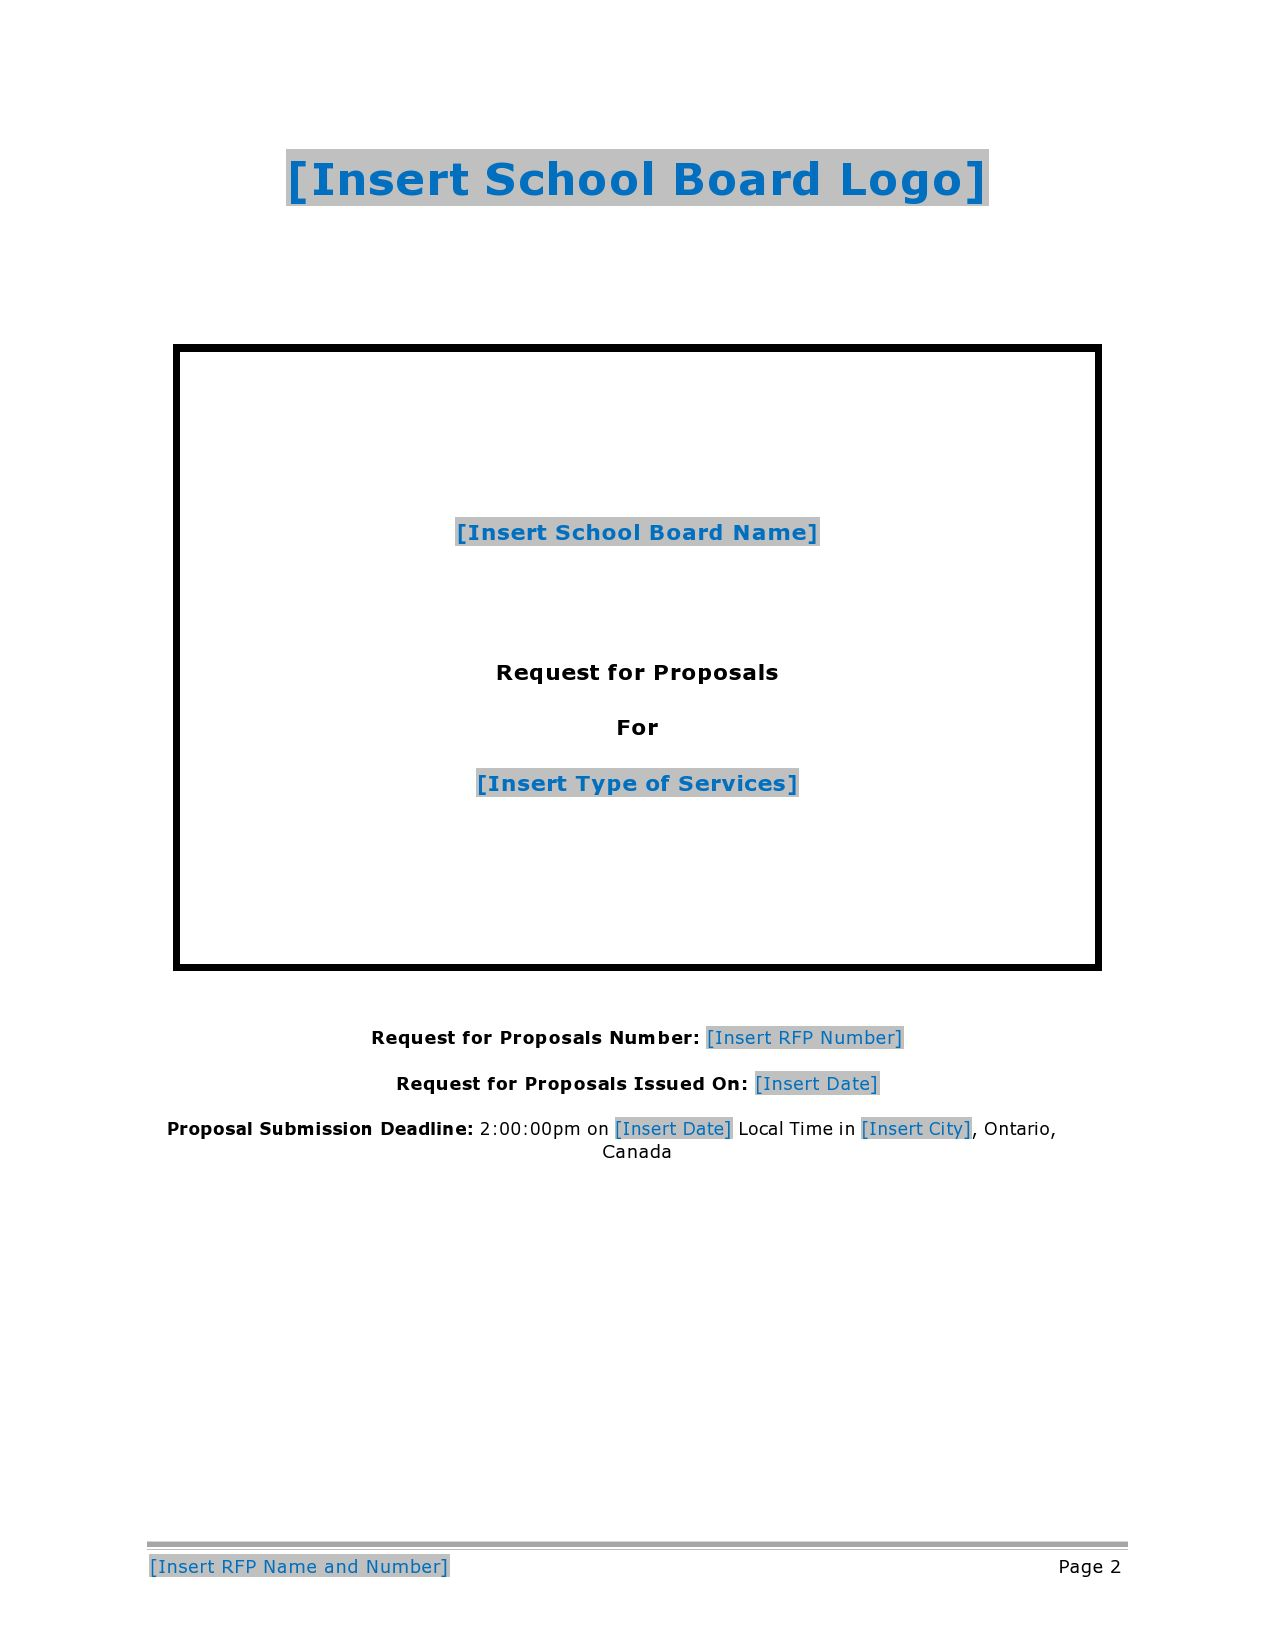 007 Surprising Request For Proposal Template Canada High Resolution Full